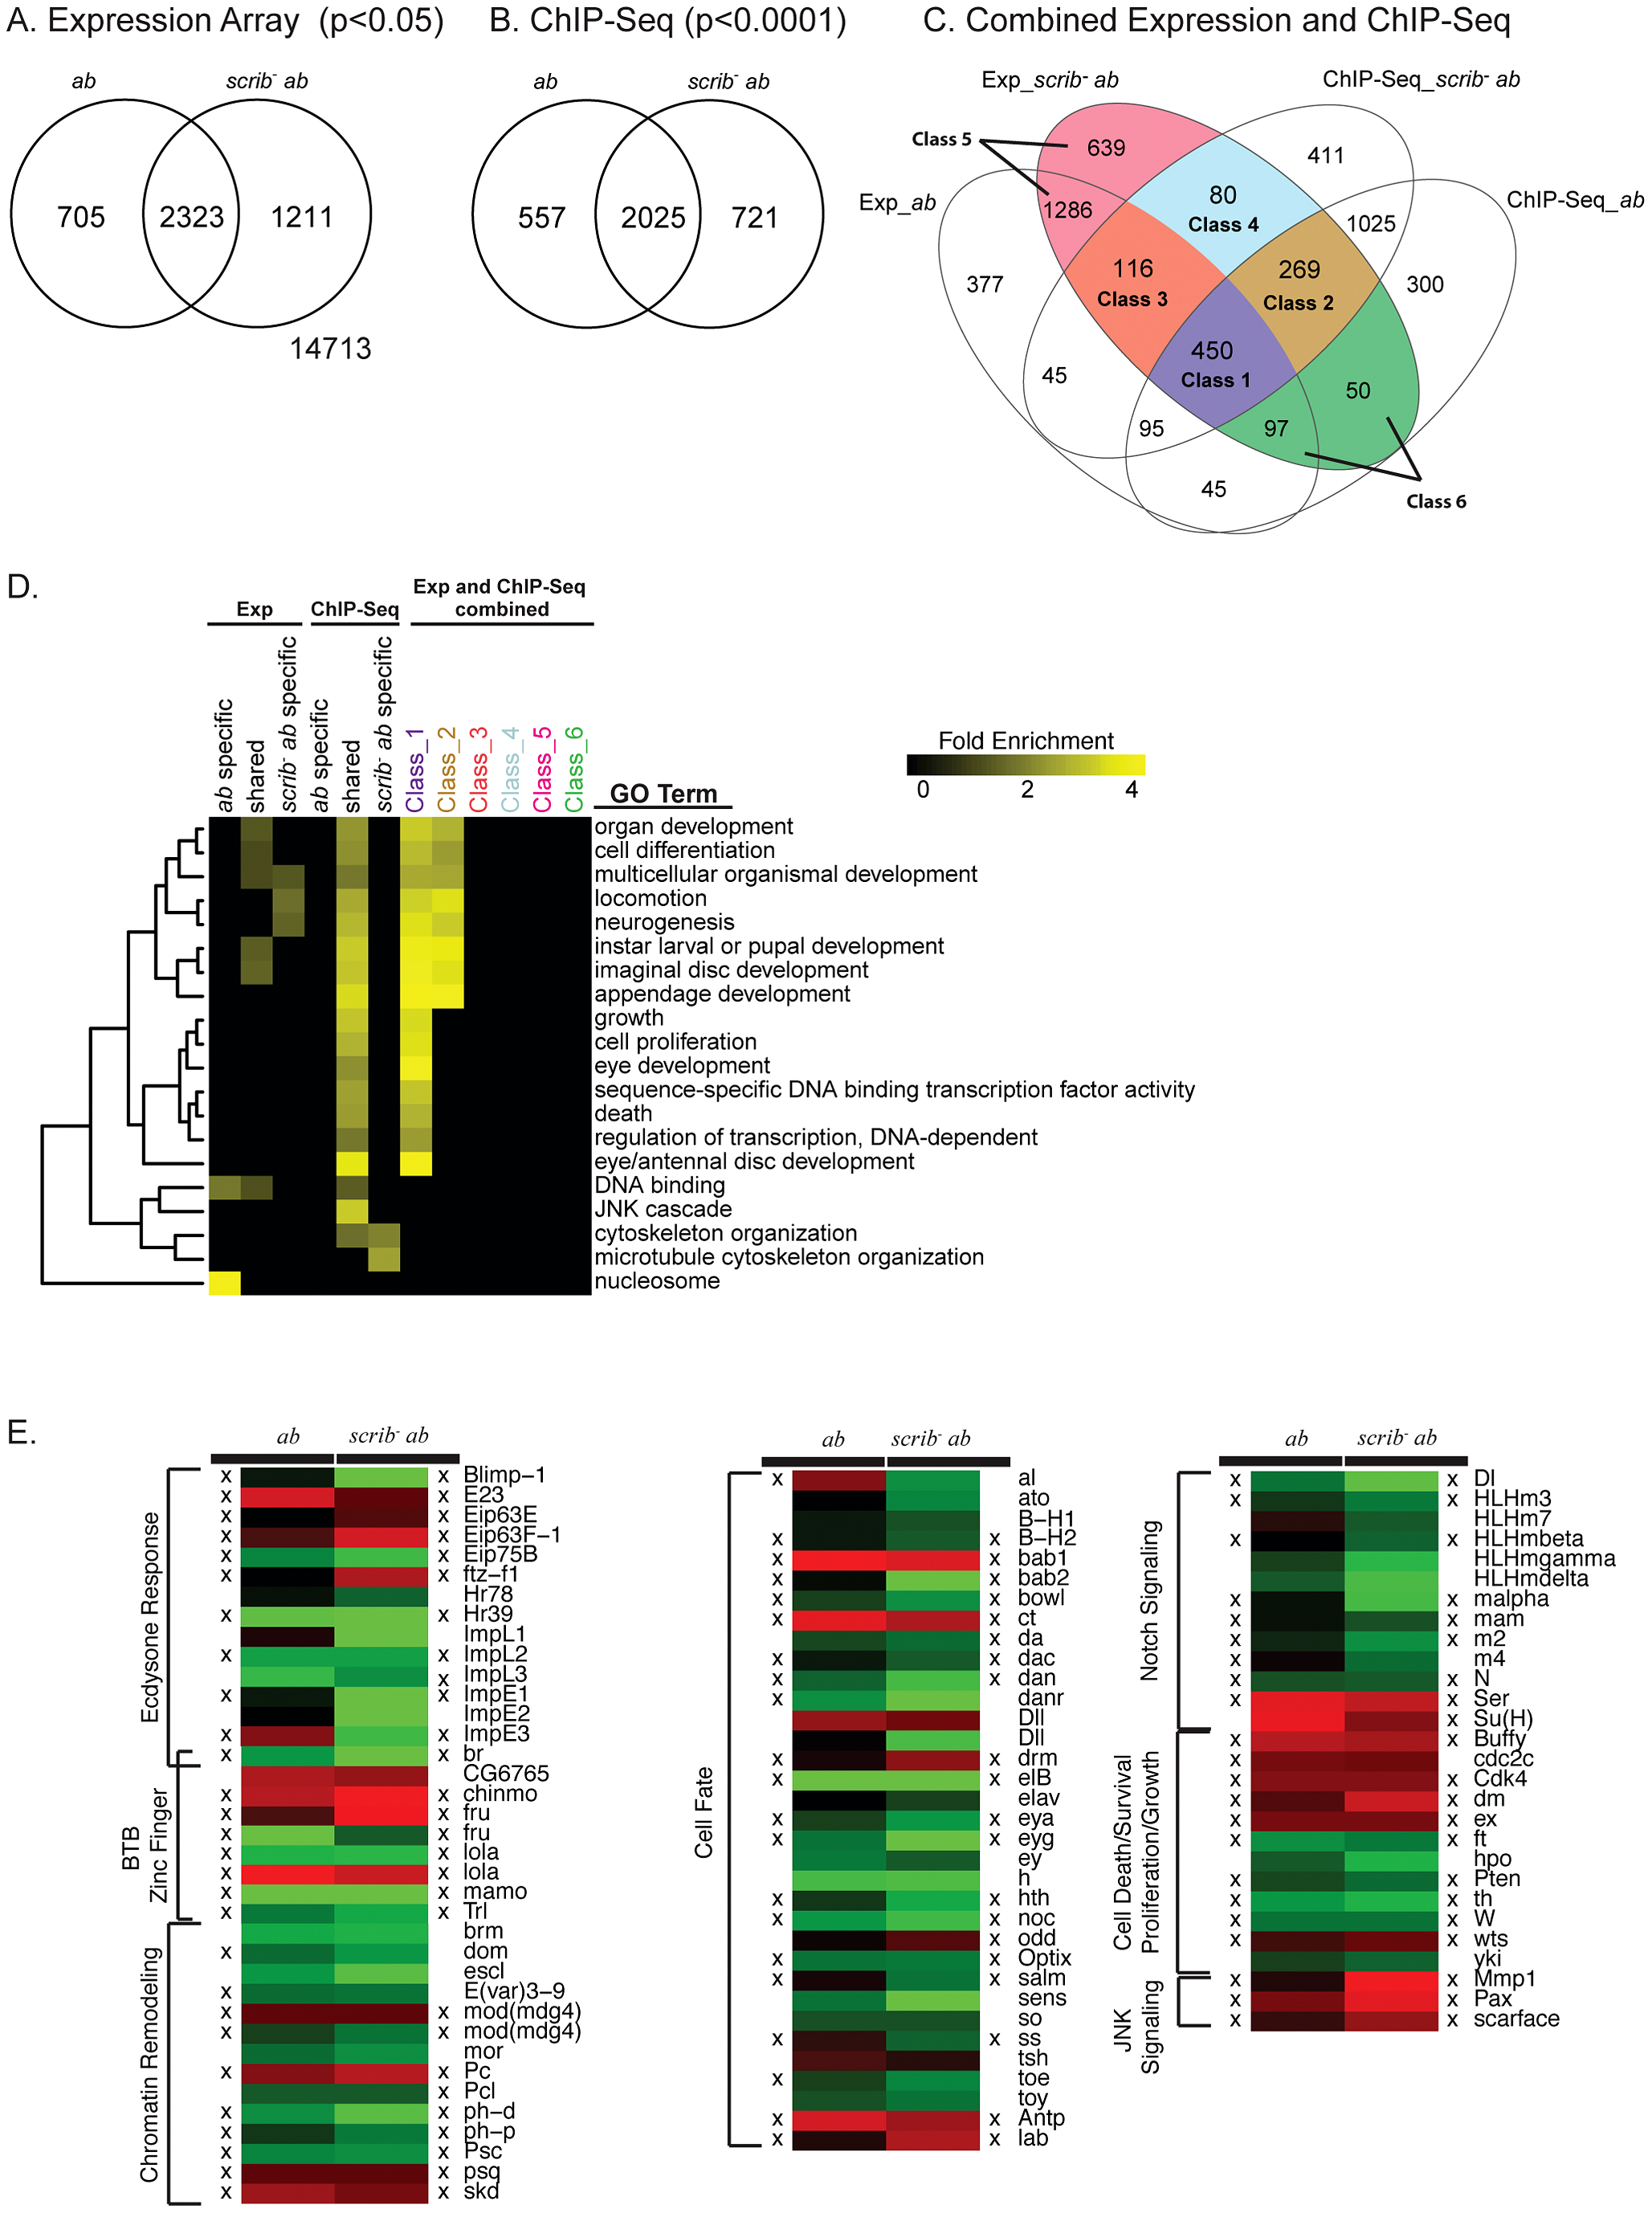 Potential tumourigenic targets of Ab identified from expression array and ChIP-Seq analysis.